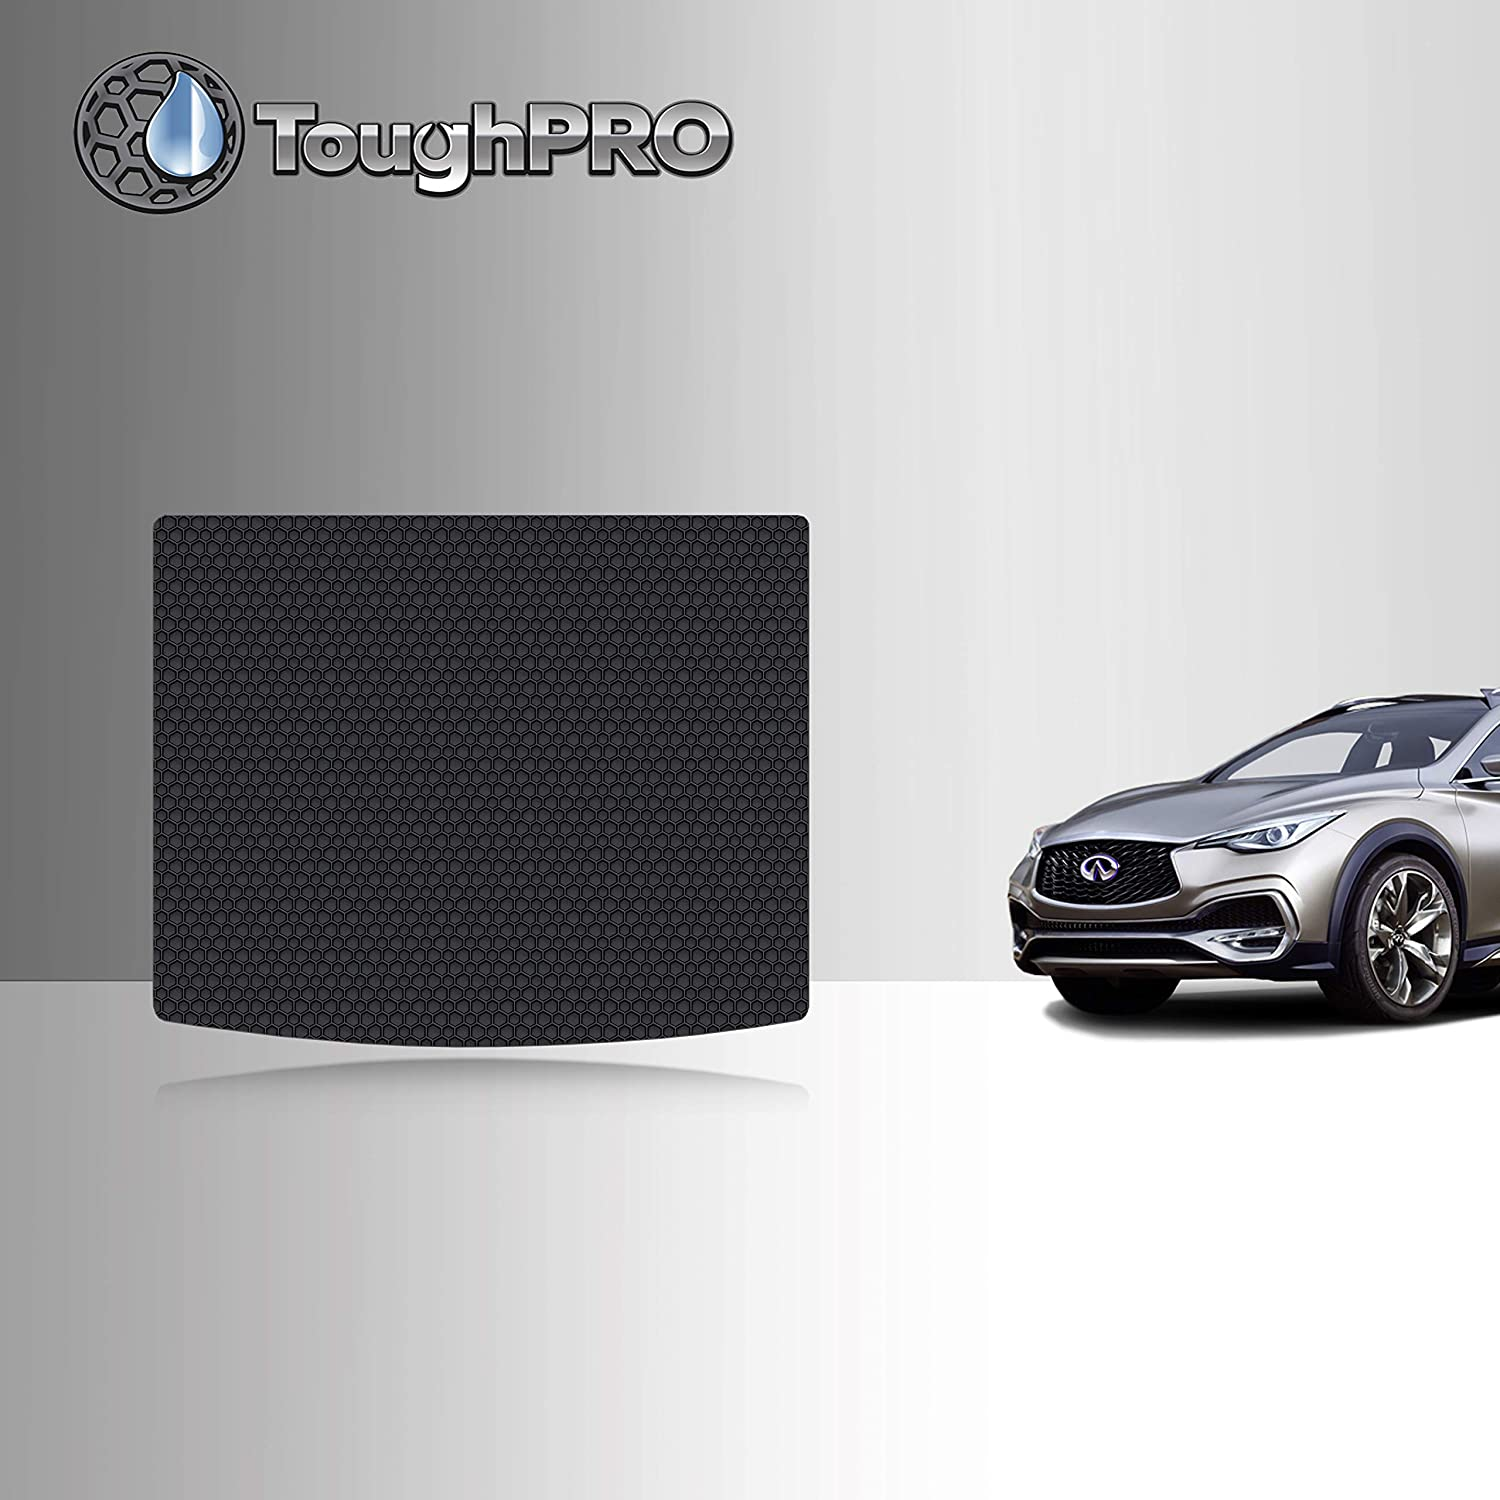 TOUGHPRO Cargo/Trunk Mat Accessories Compatible with Infiniti QX30 - All Weather - Heavy Duty - (Made in USA) - Black Rubber - 2017, 2018, 2019, 2020